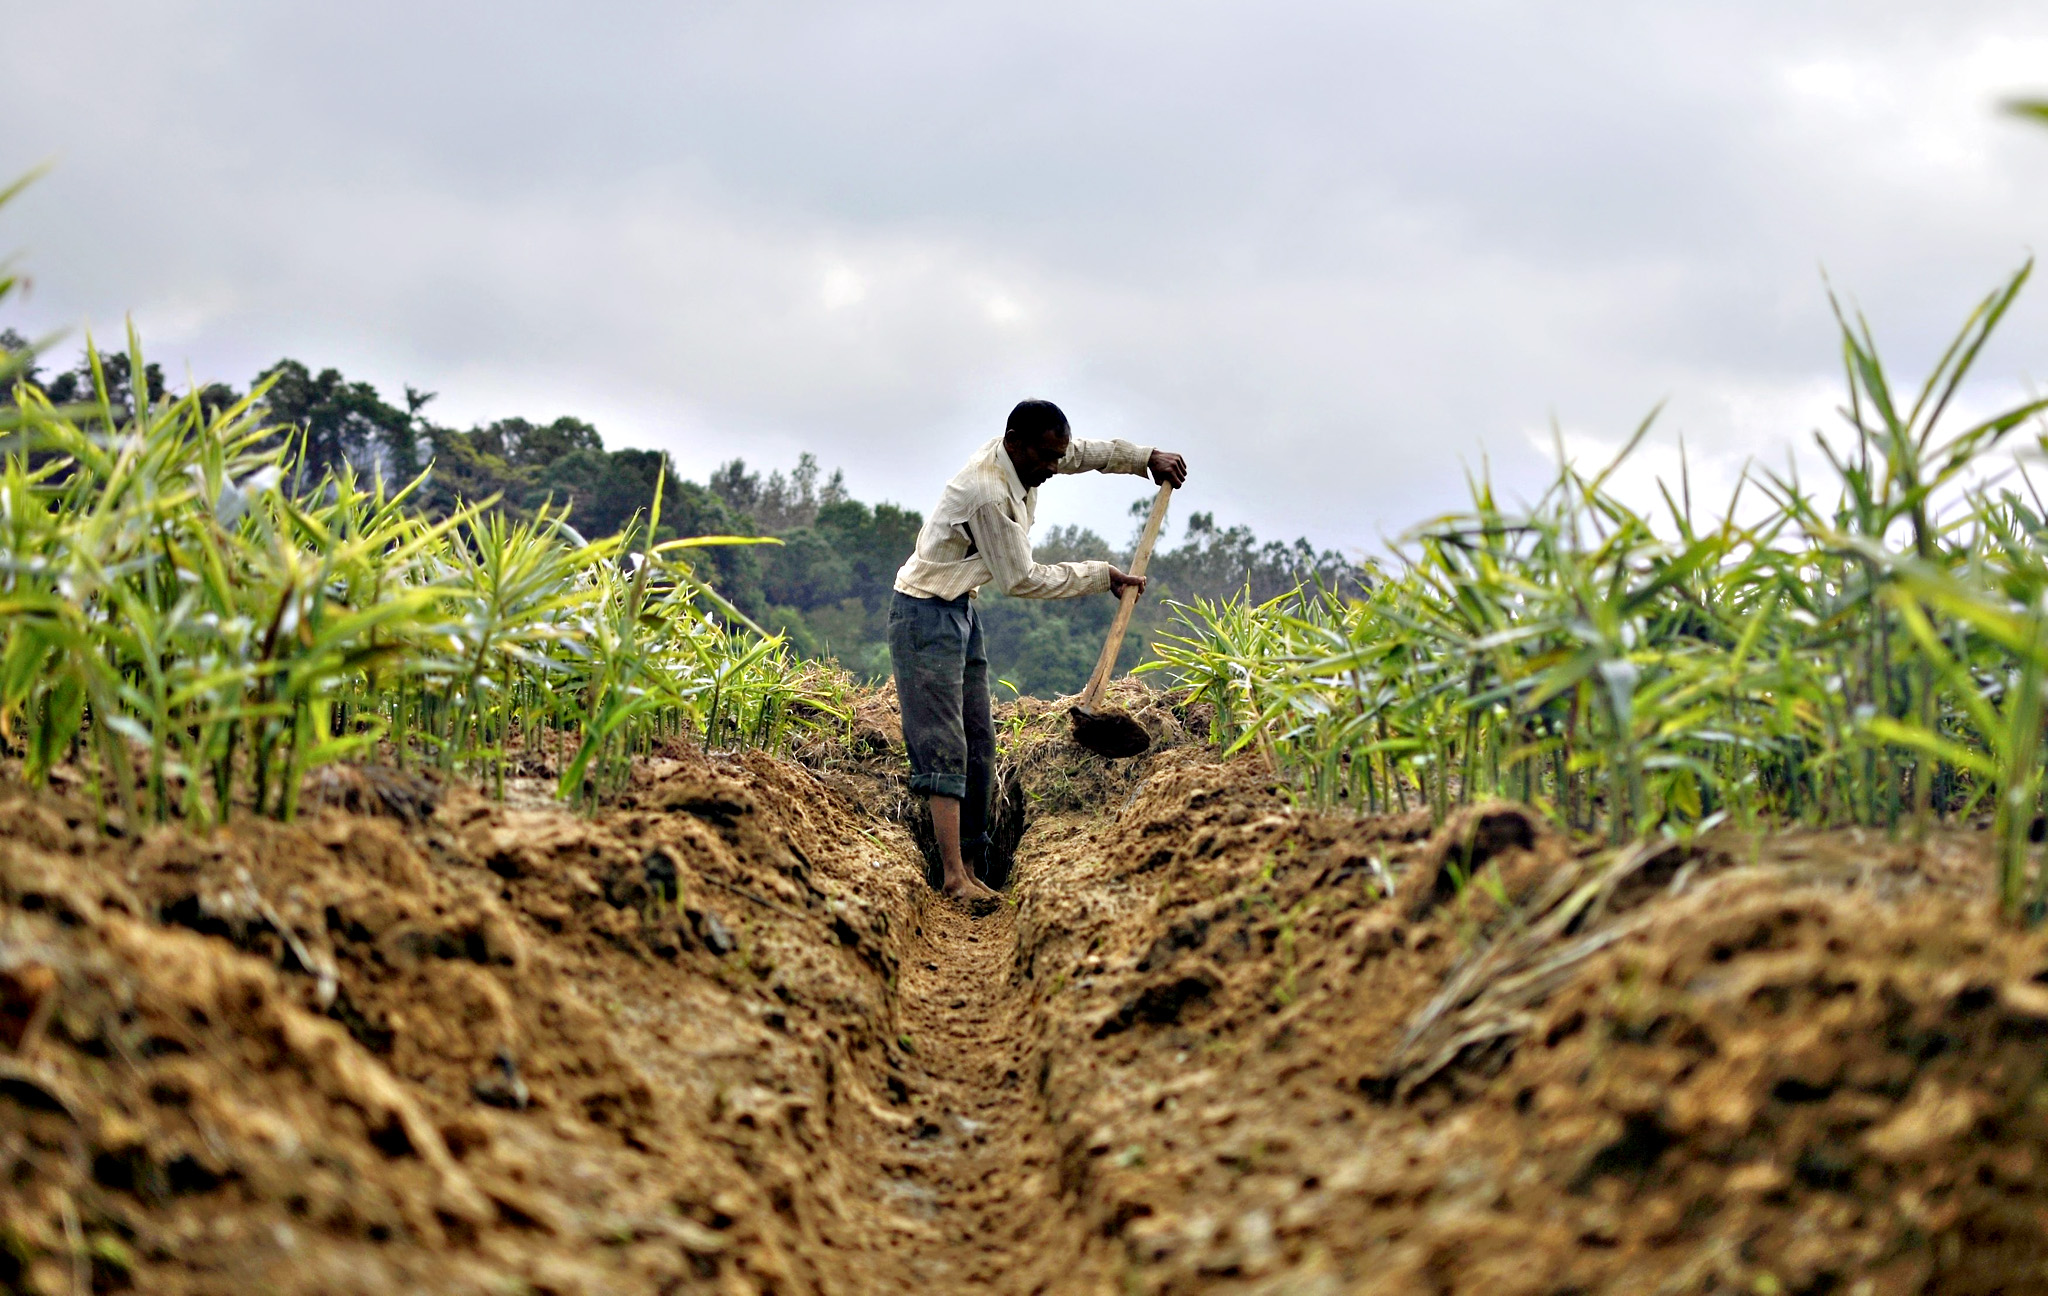 A farmer cultivating ginger uses a hoe to dig a ditch in his field in Nagarally village in the southern state of Karnataka, India on Tuesday